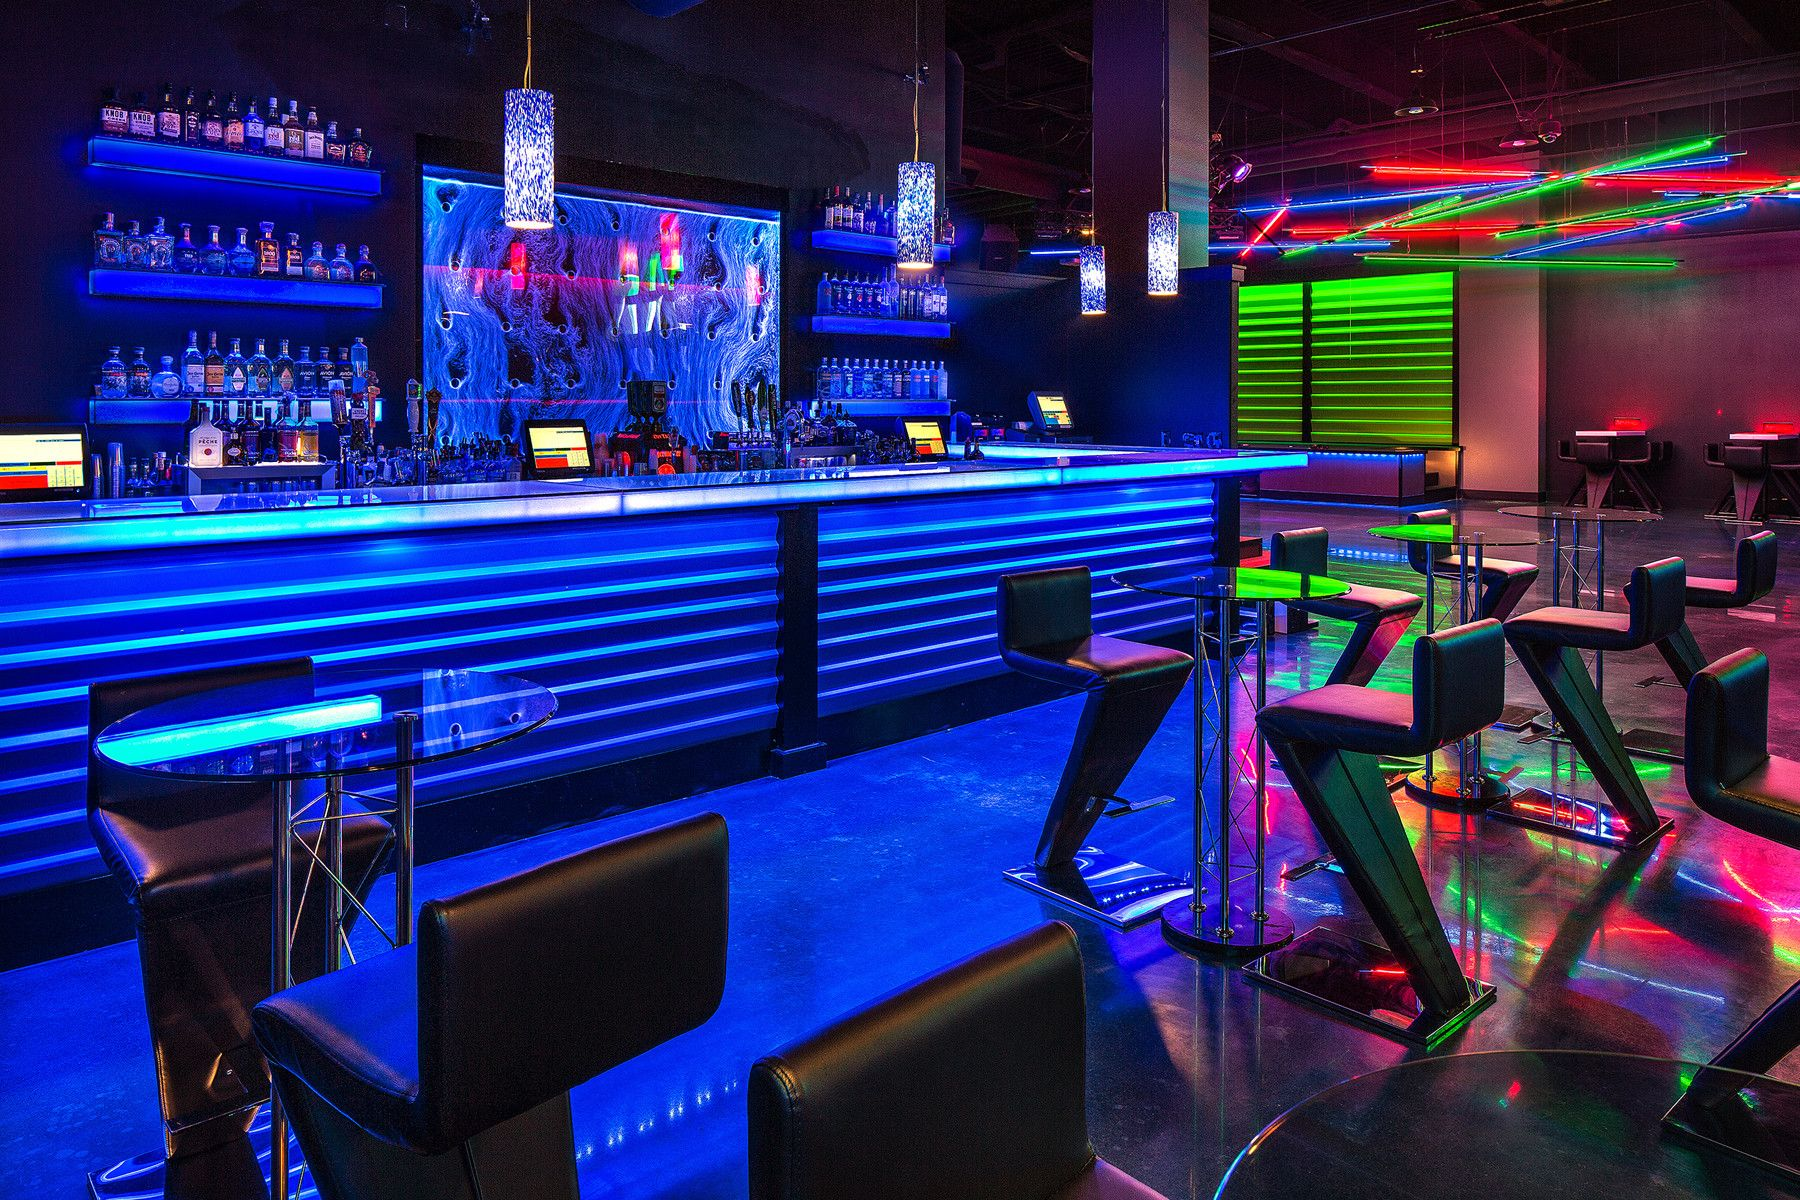 Nightclub Design Ideas inspired by contikis vacations decor resembled a european nightclub 1000 Images About Bar Lounge Nightclub Design On Pinterest Lounge Design Bar Designs And Night Club